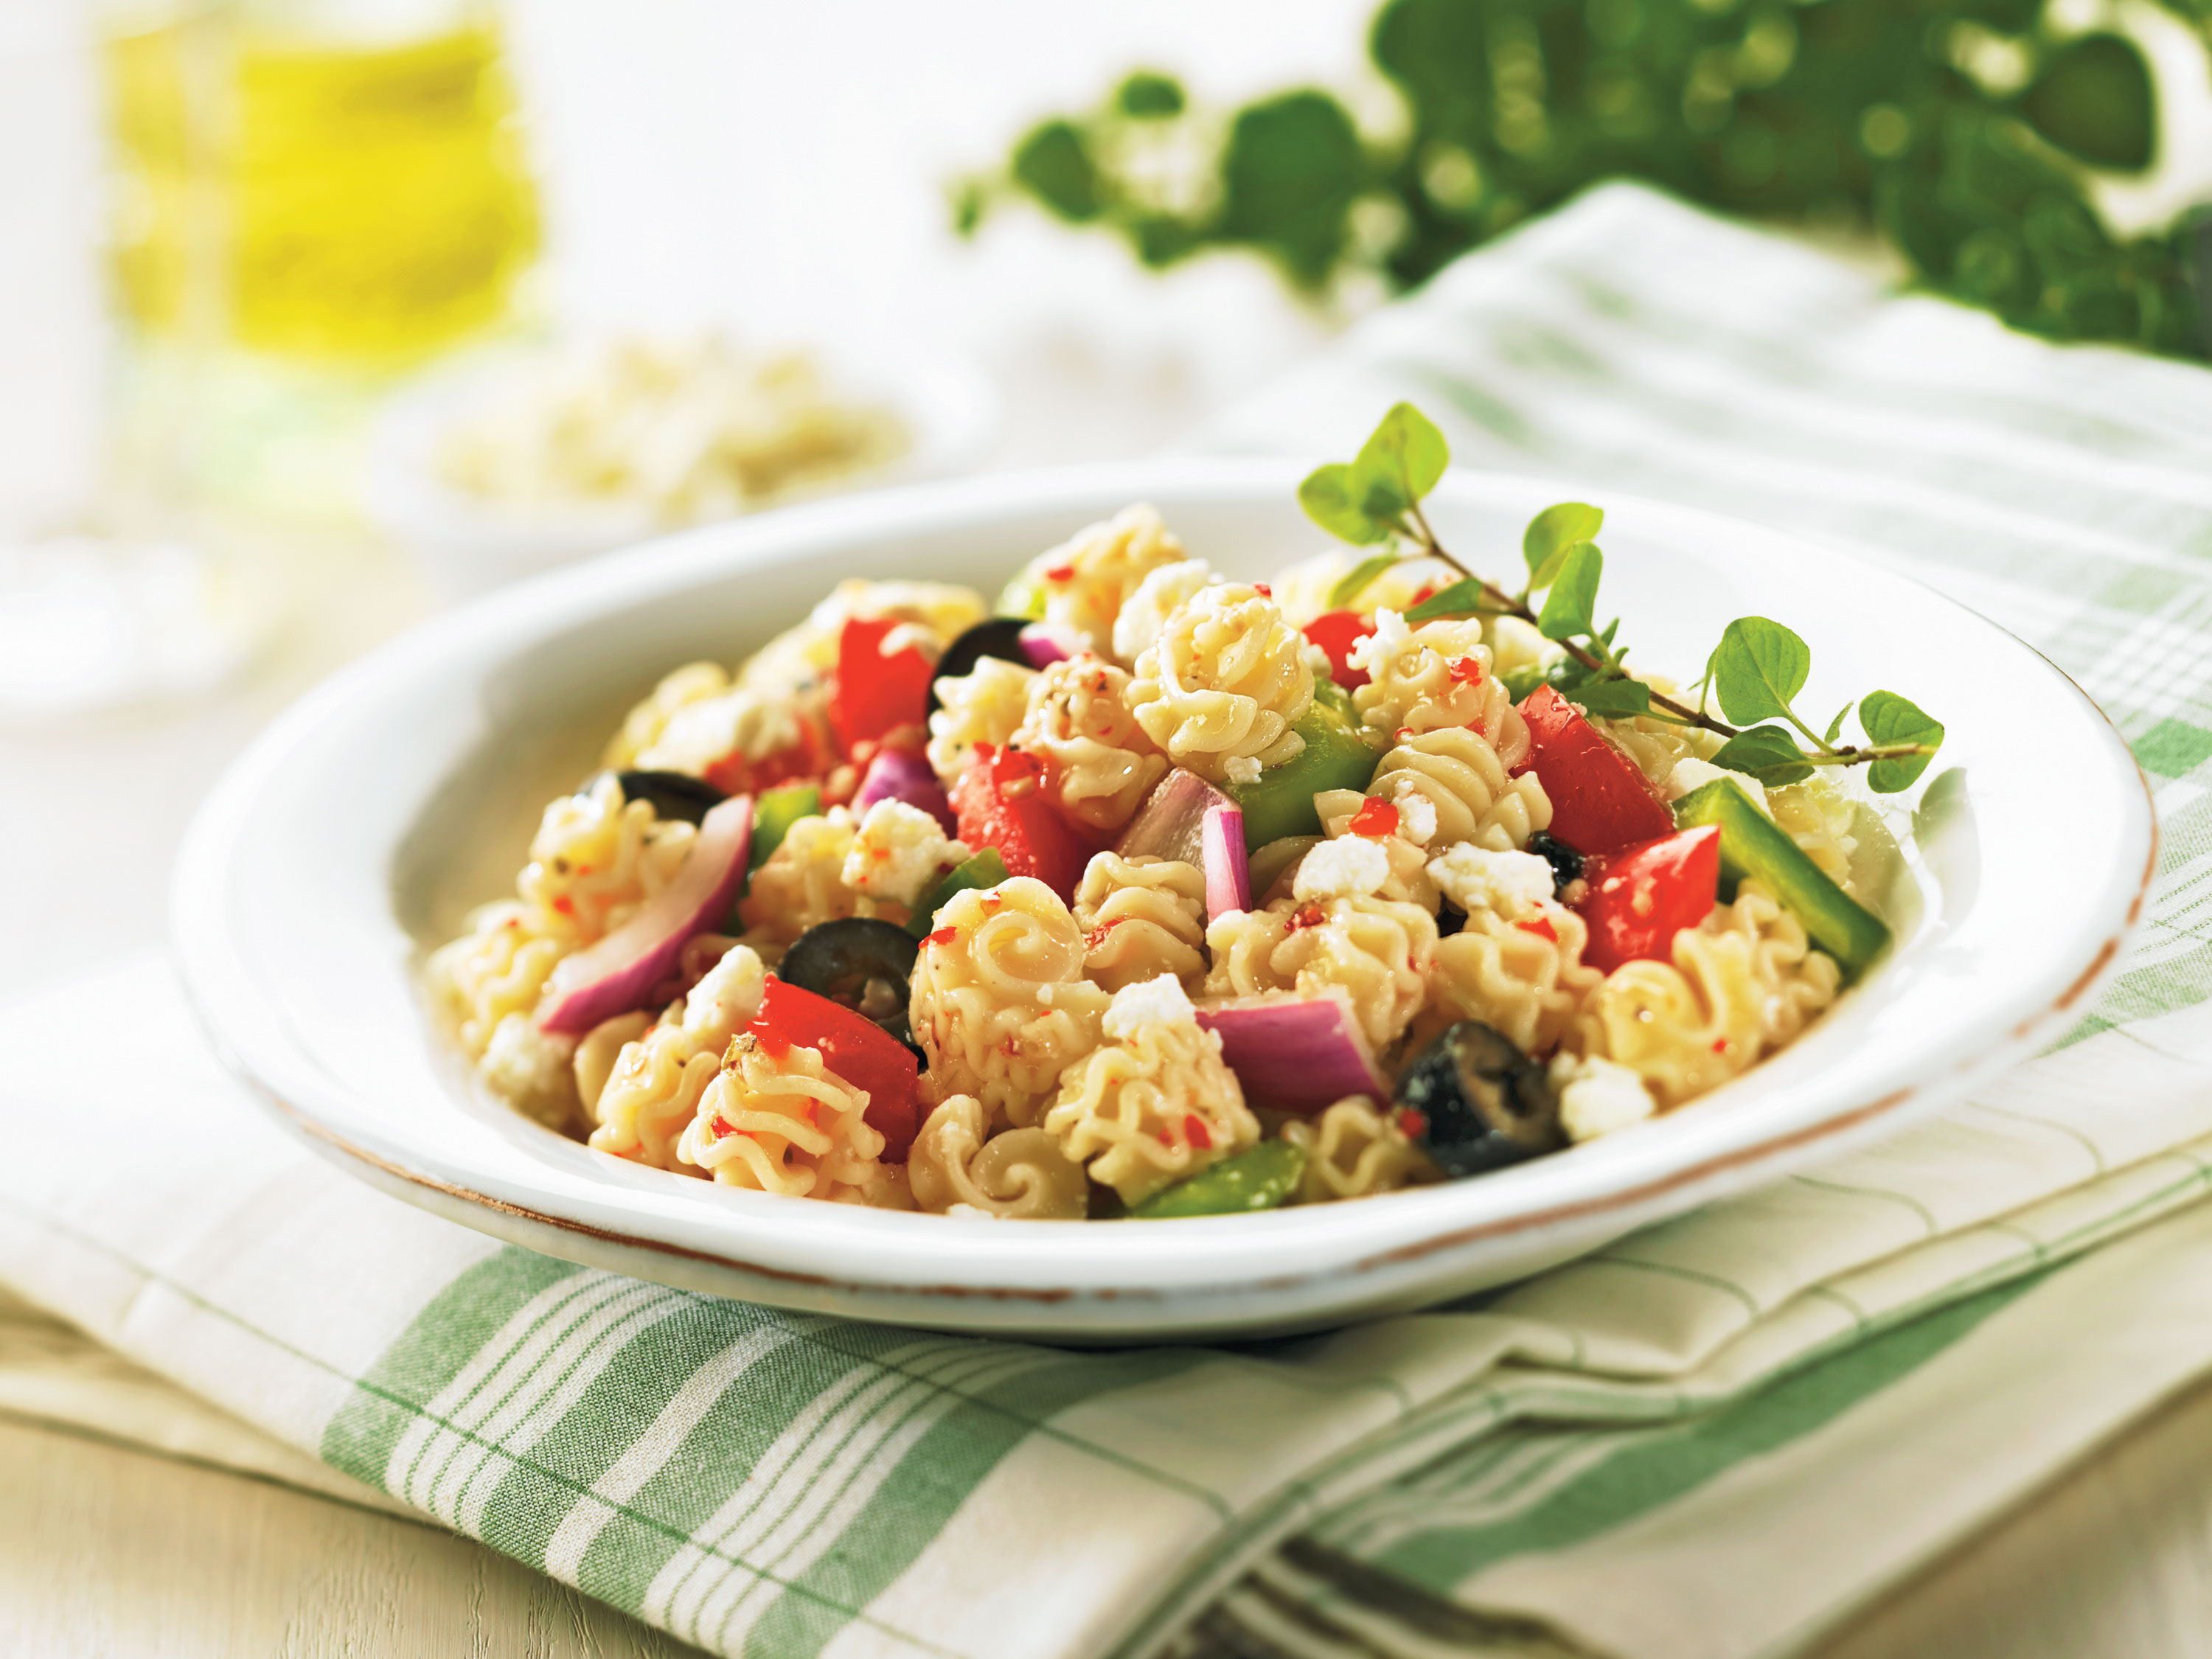 Flavors of the Mediterranean come to life with pasta in this great summertime salad recipe.